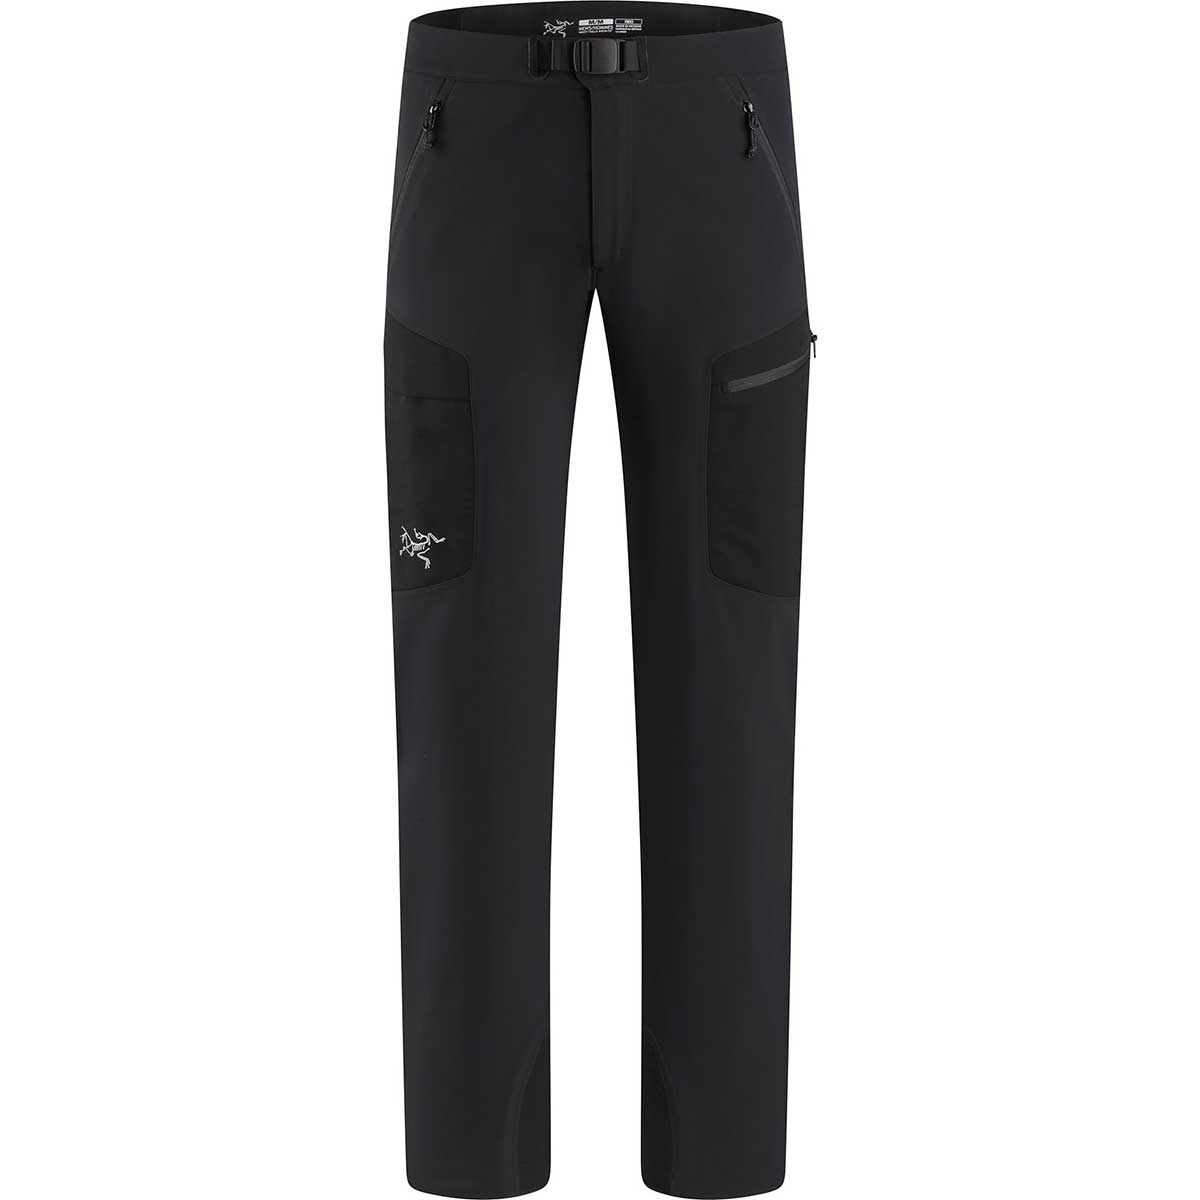 Arcteryx men's Gamma MX Pant in Black front view